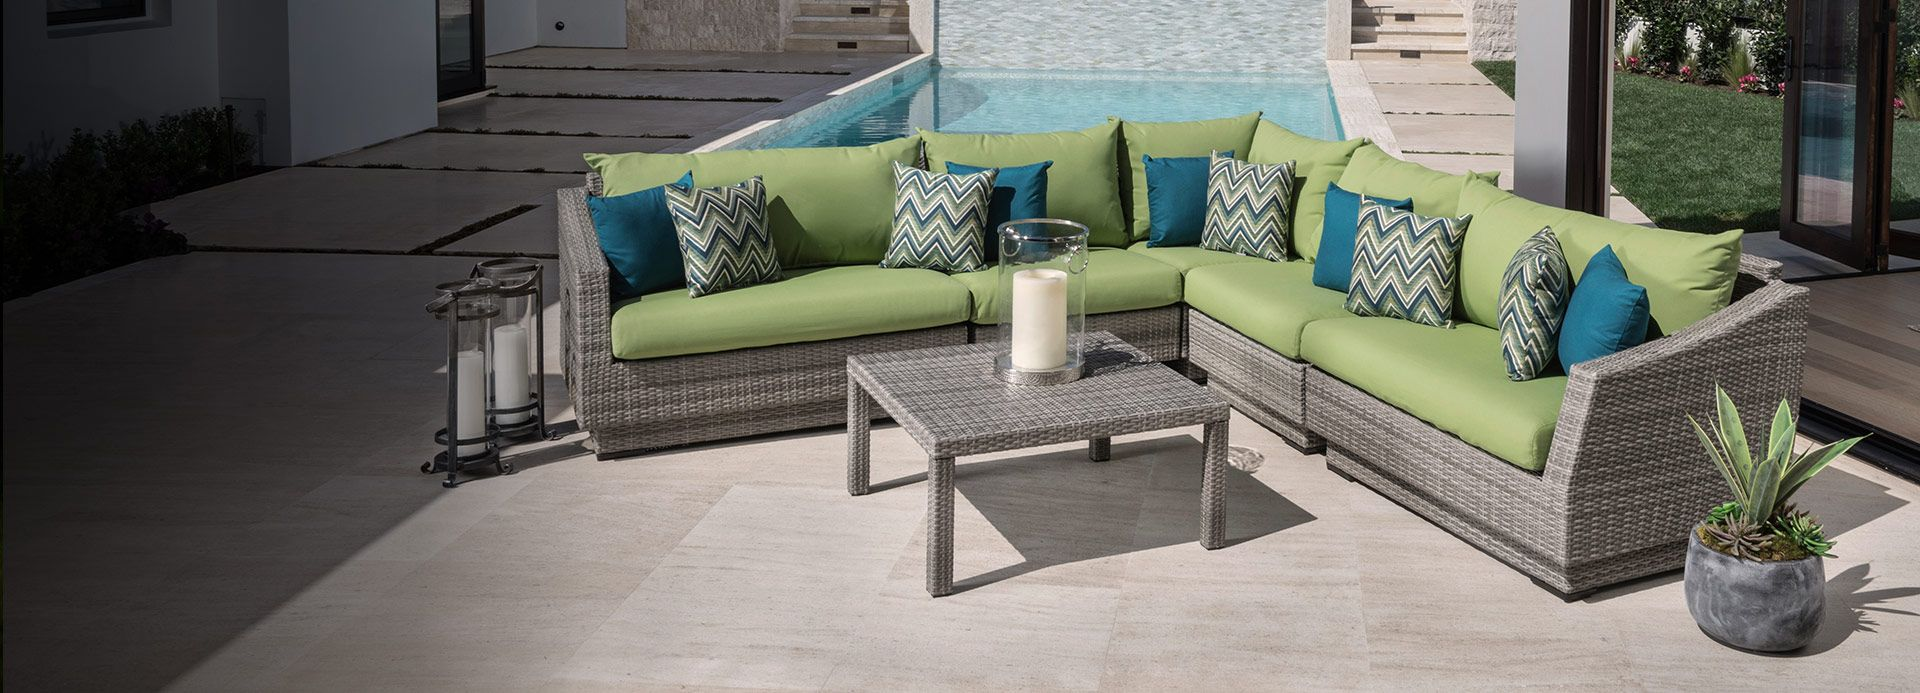 Modern Outdoor Patiopool Deck Furniture Green And Teal Cushions - Discount patio furniture atlanta